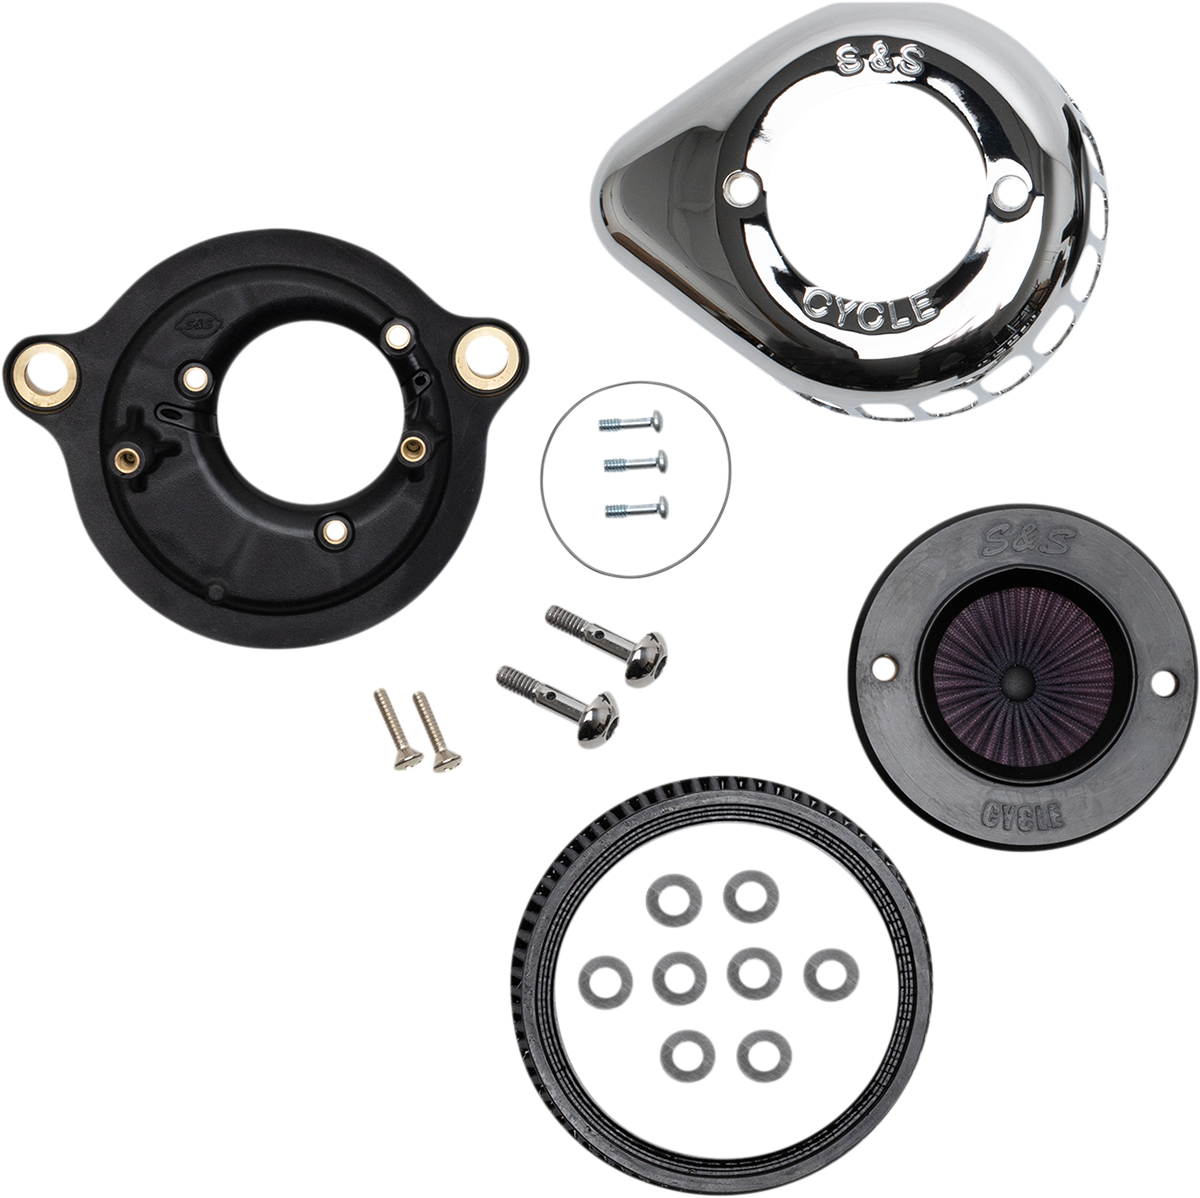 S&S Air Stinger Stealth Air Filter Cleaner Kit 17-20 Harley Softail Touring FLHX